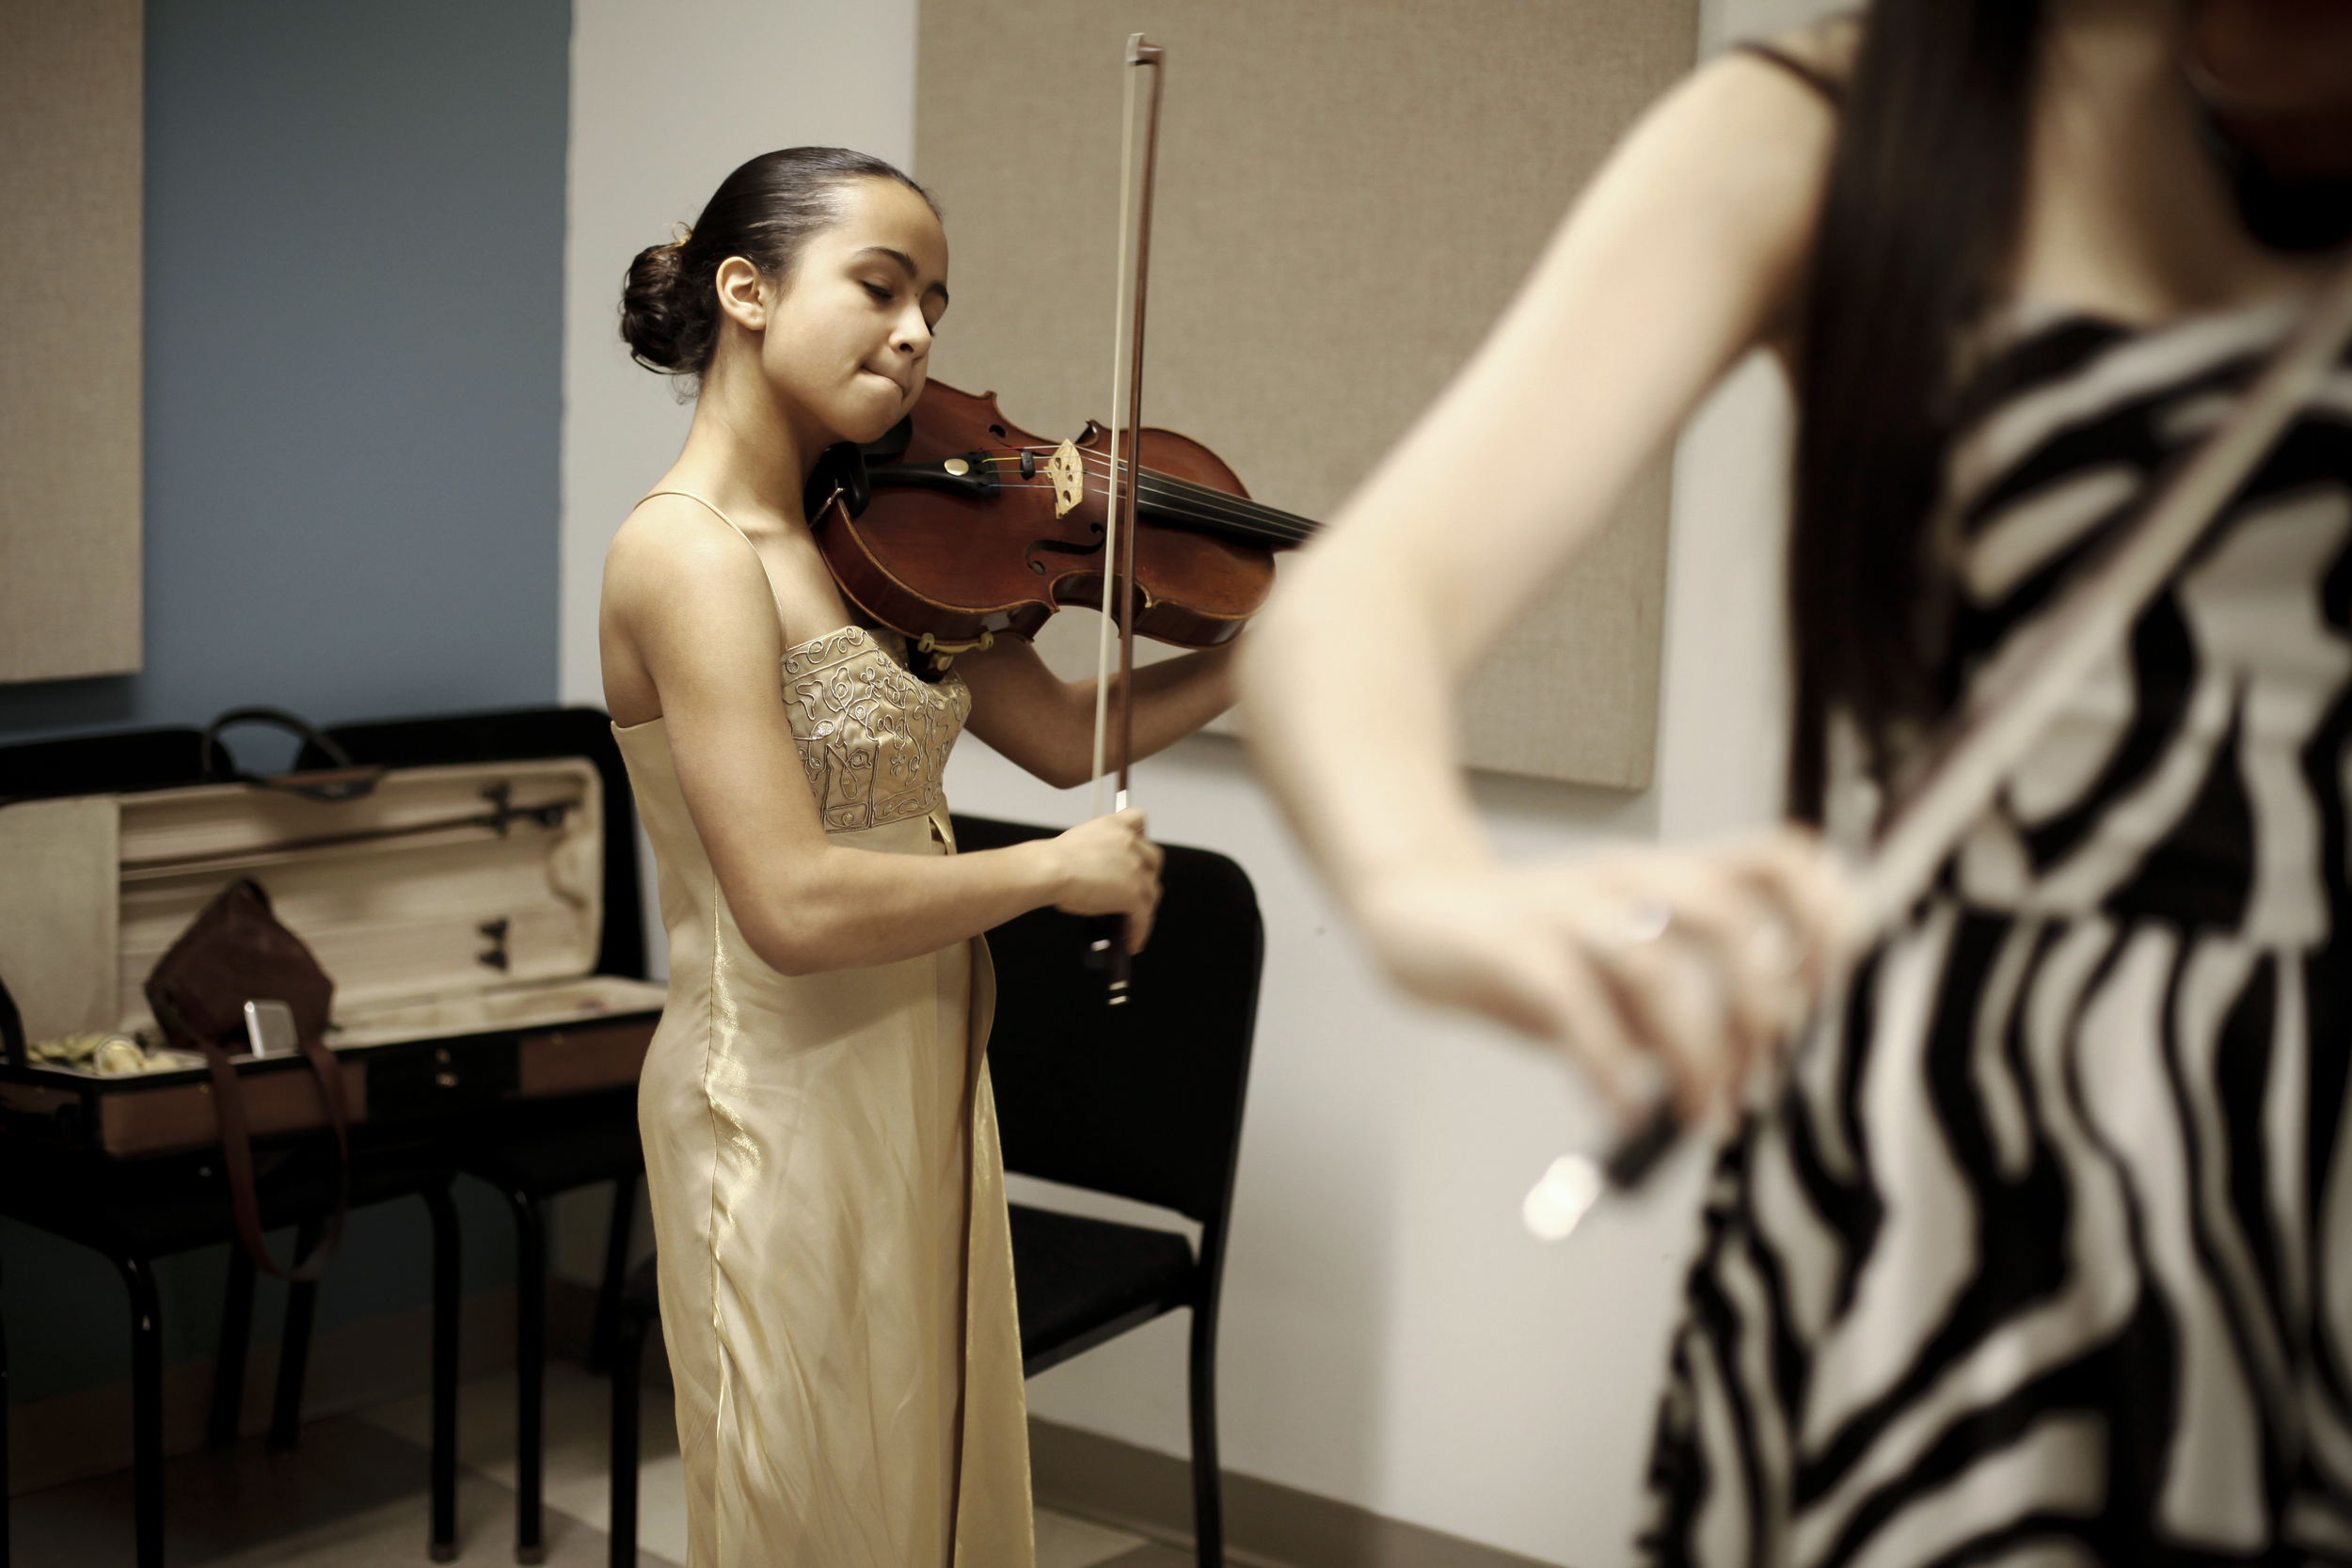 Mya Greene, 17, from Los Angeles, CA practices in the Sphinx Competition women's practice room on Thursday, Feb. 20, 2014 at Orchestra Hall in Detroit. Tim Galloway for Al Jazeera America.